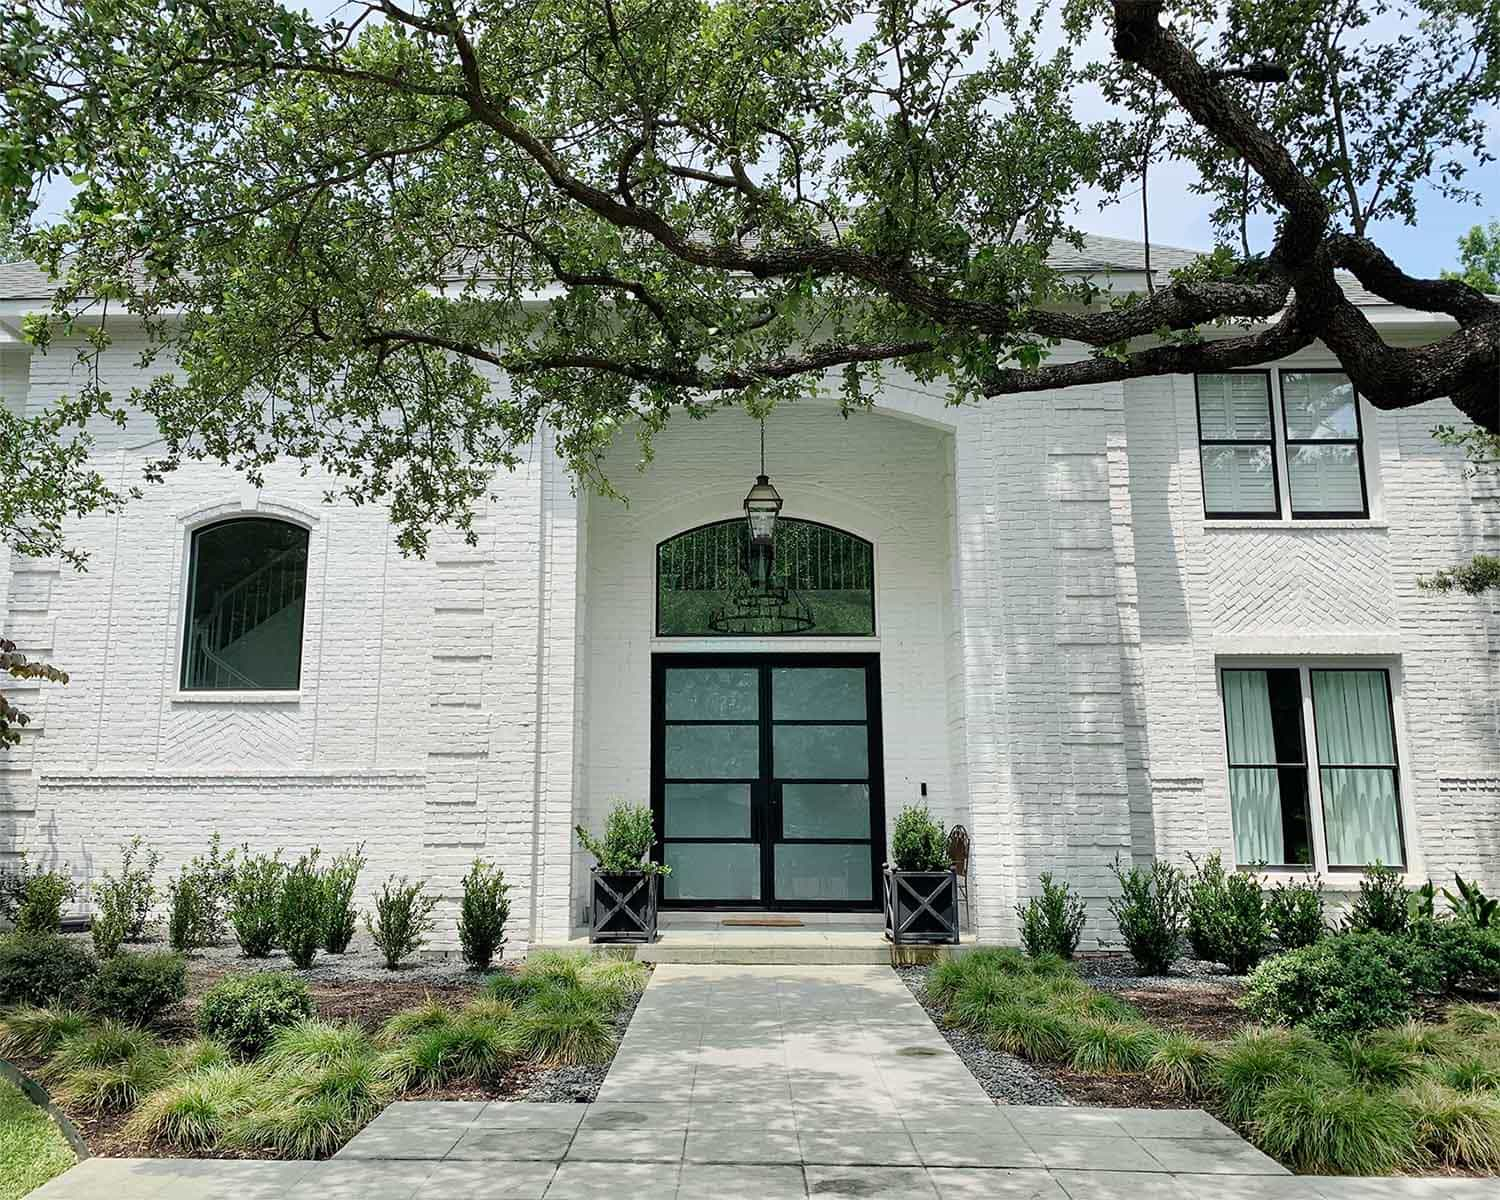 White painted brick home exterior in Sherwin Williams 7005 Pure White by Paper Moon Painting, Alamo Heights TX